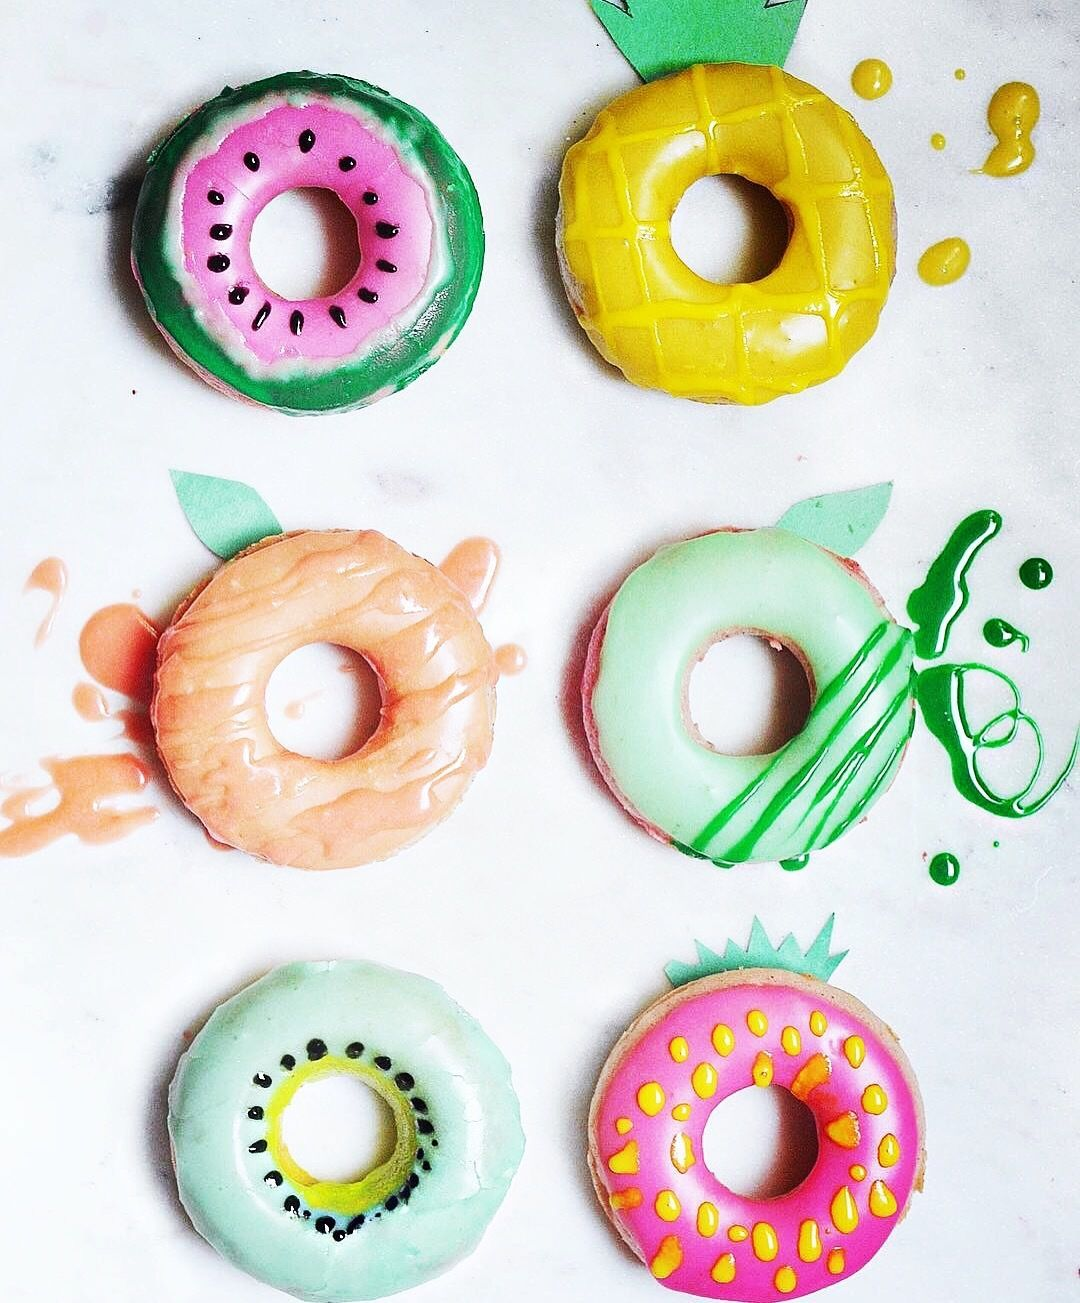 They look so pretty! If I see one of these donuts I'll just starve myself!